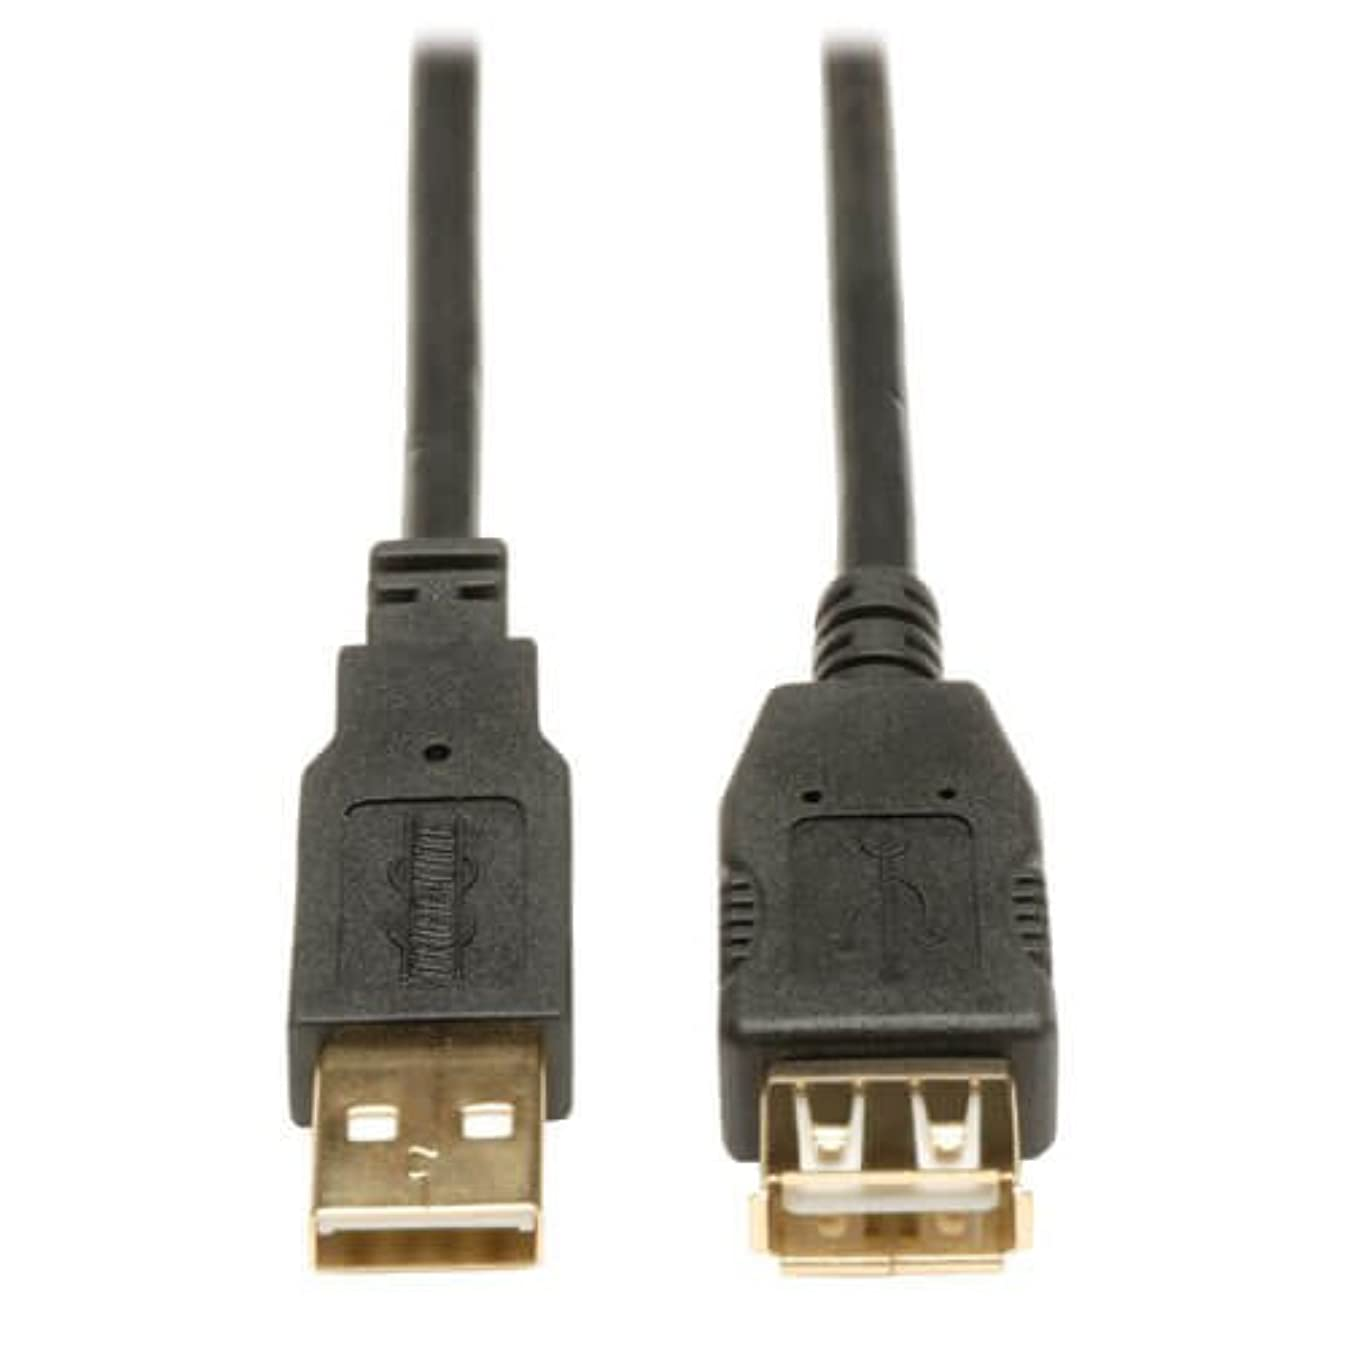 Tripp Lite USB 2.0 Hi-Speed Extension Cable (A M/F) 16-ft. (U024-016)